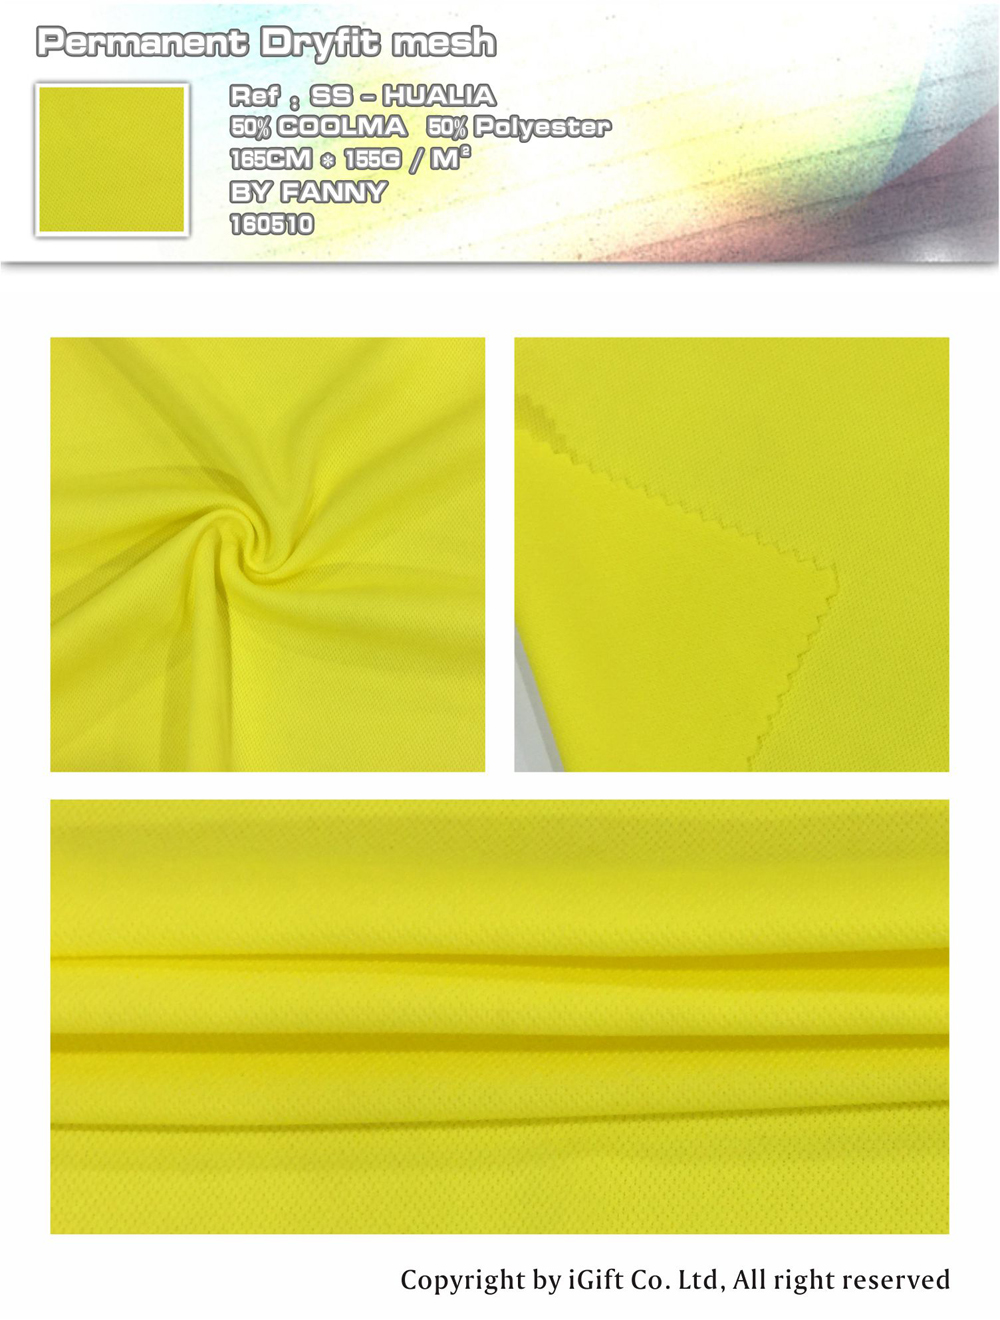 Permantne Dryfit mesh  Ref:SS-HUALIA    50% COOLMA   50%Polyester    165CM*155G/M²   BY  FANNY   160510